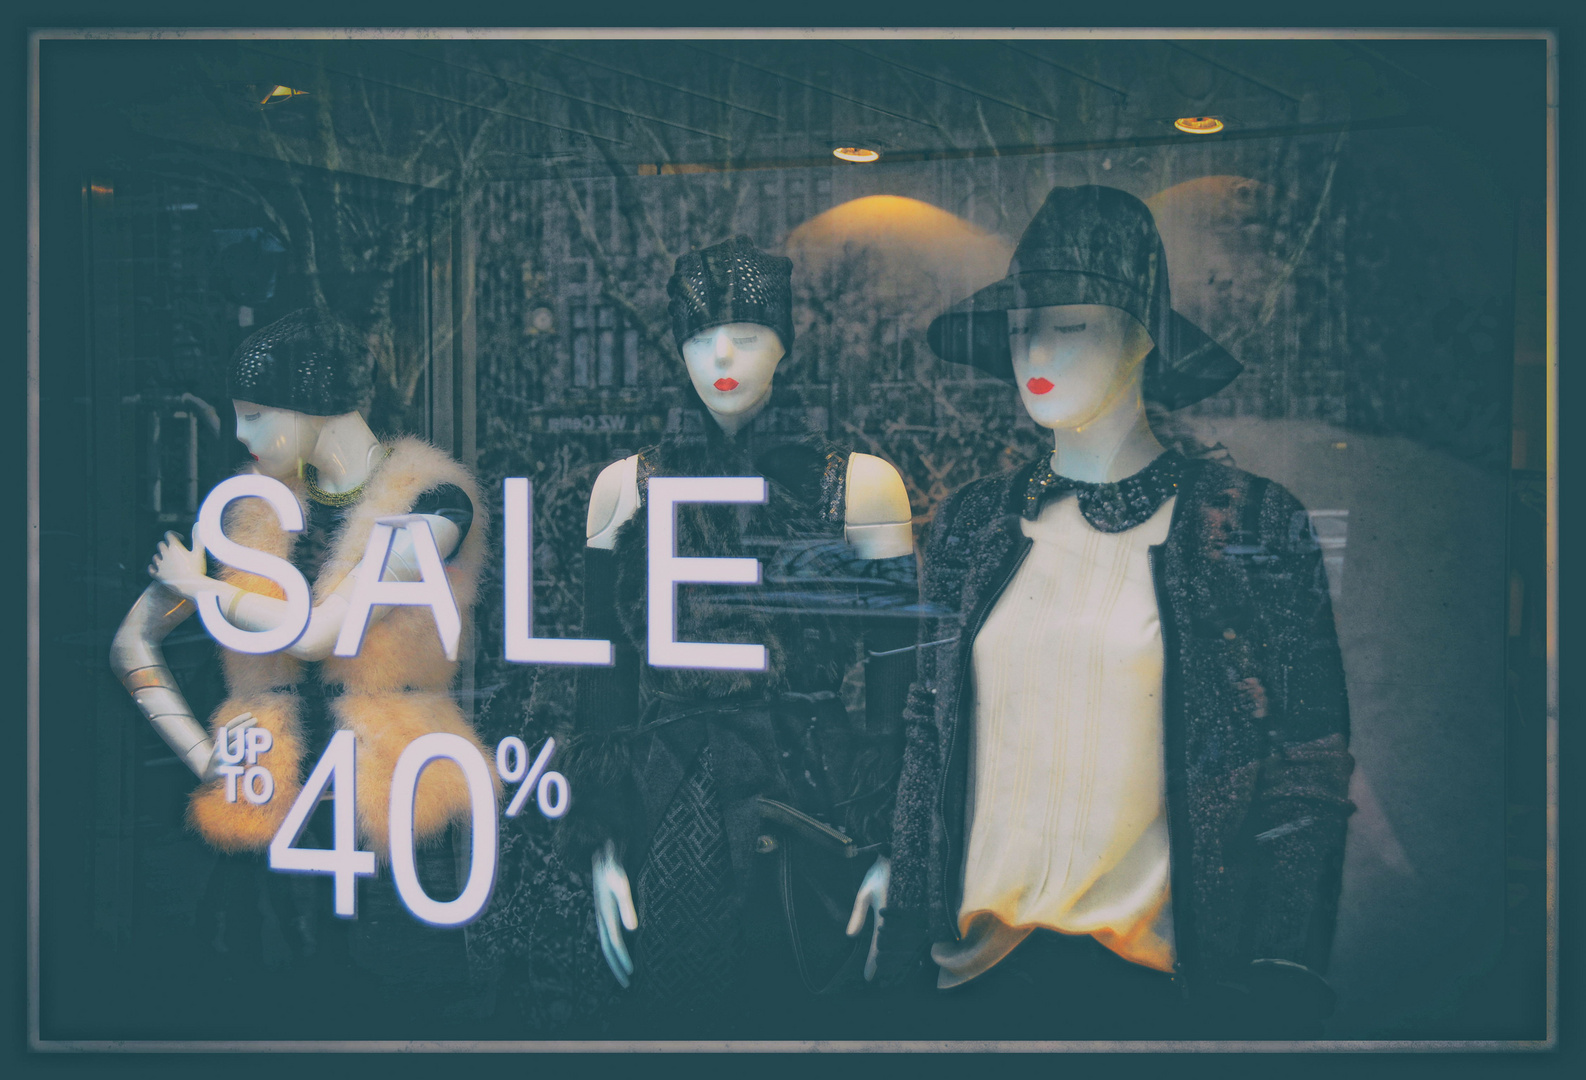 Sale up to 40 %